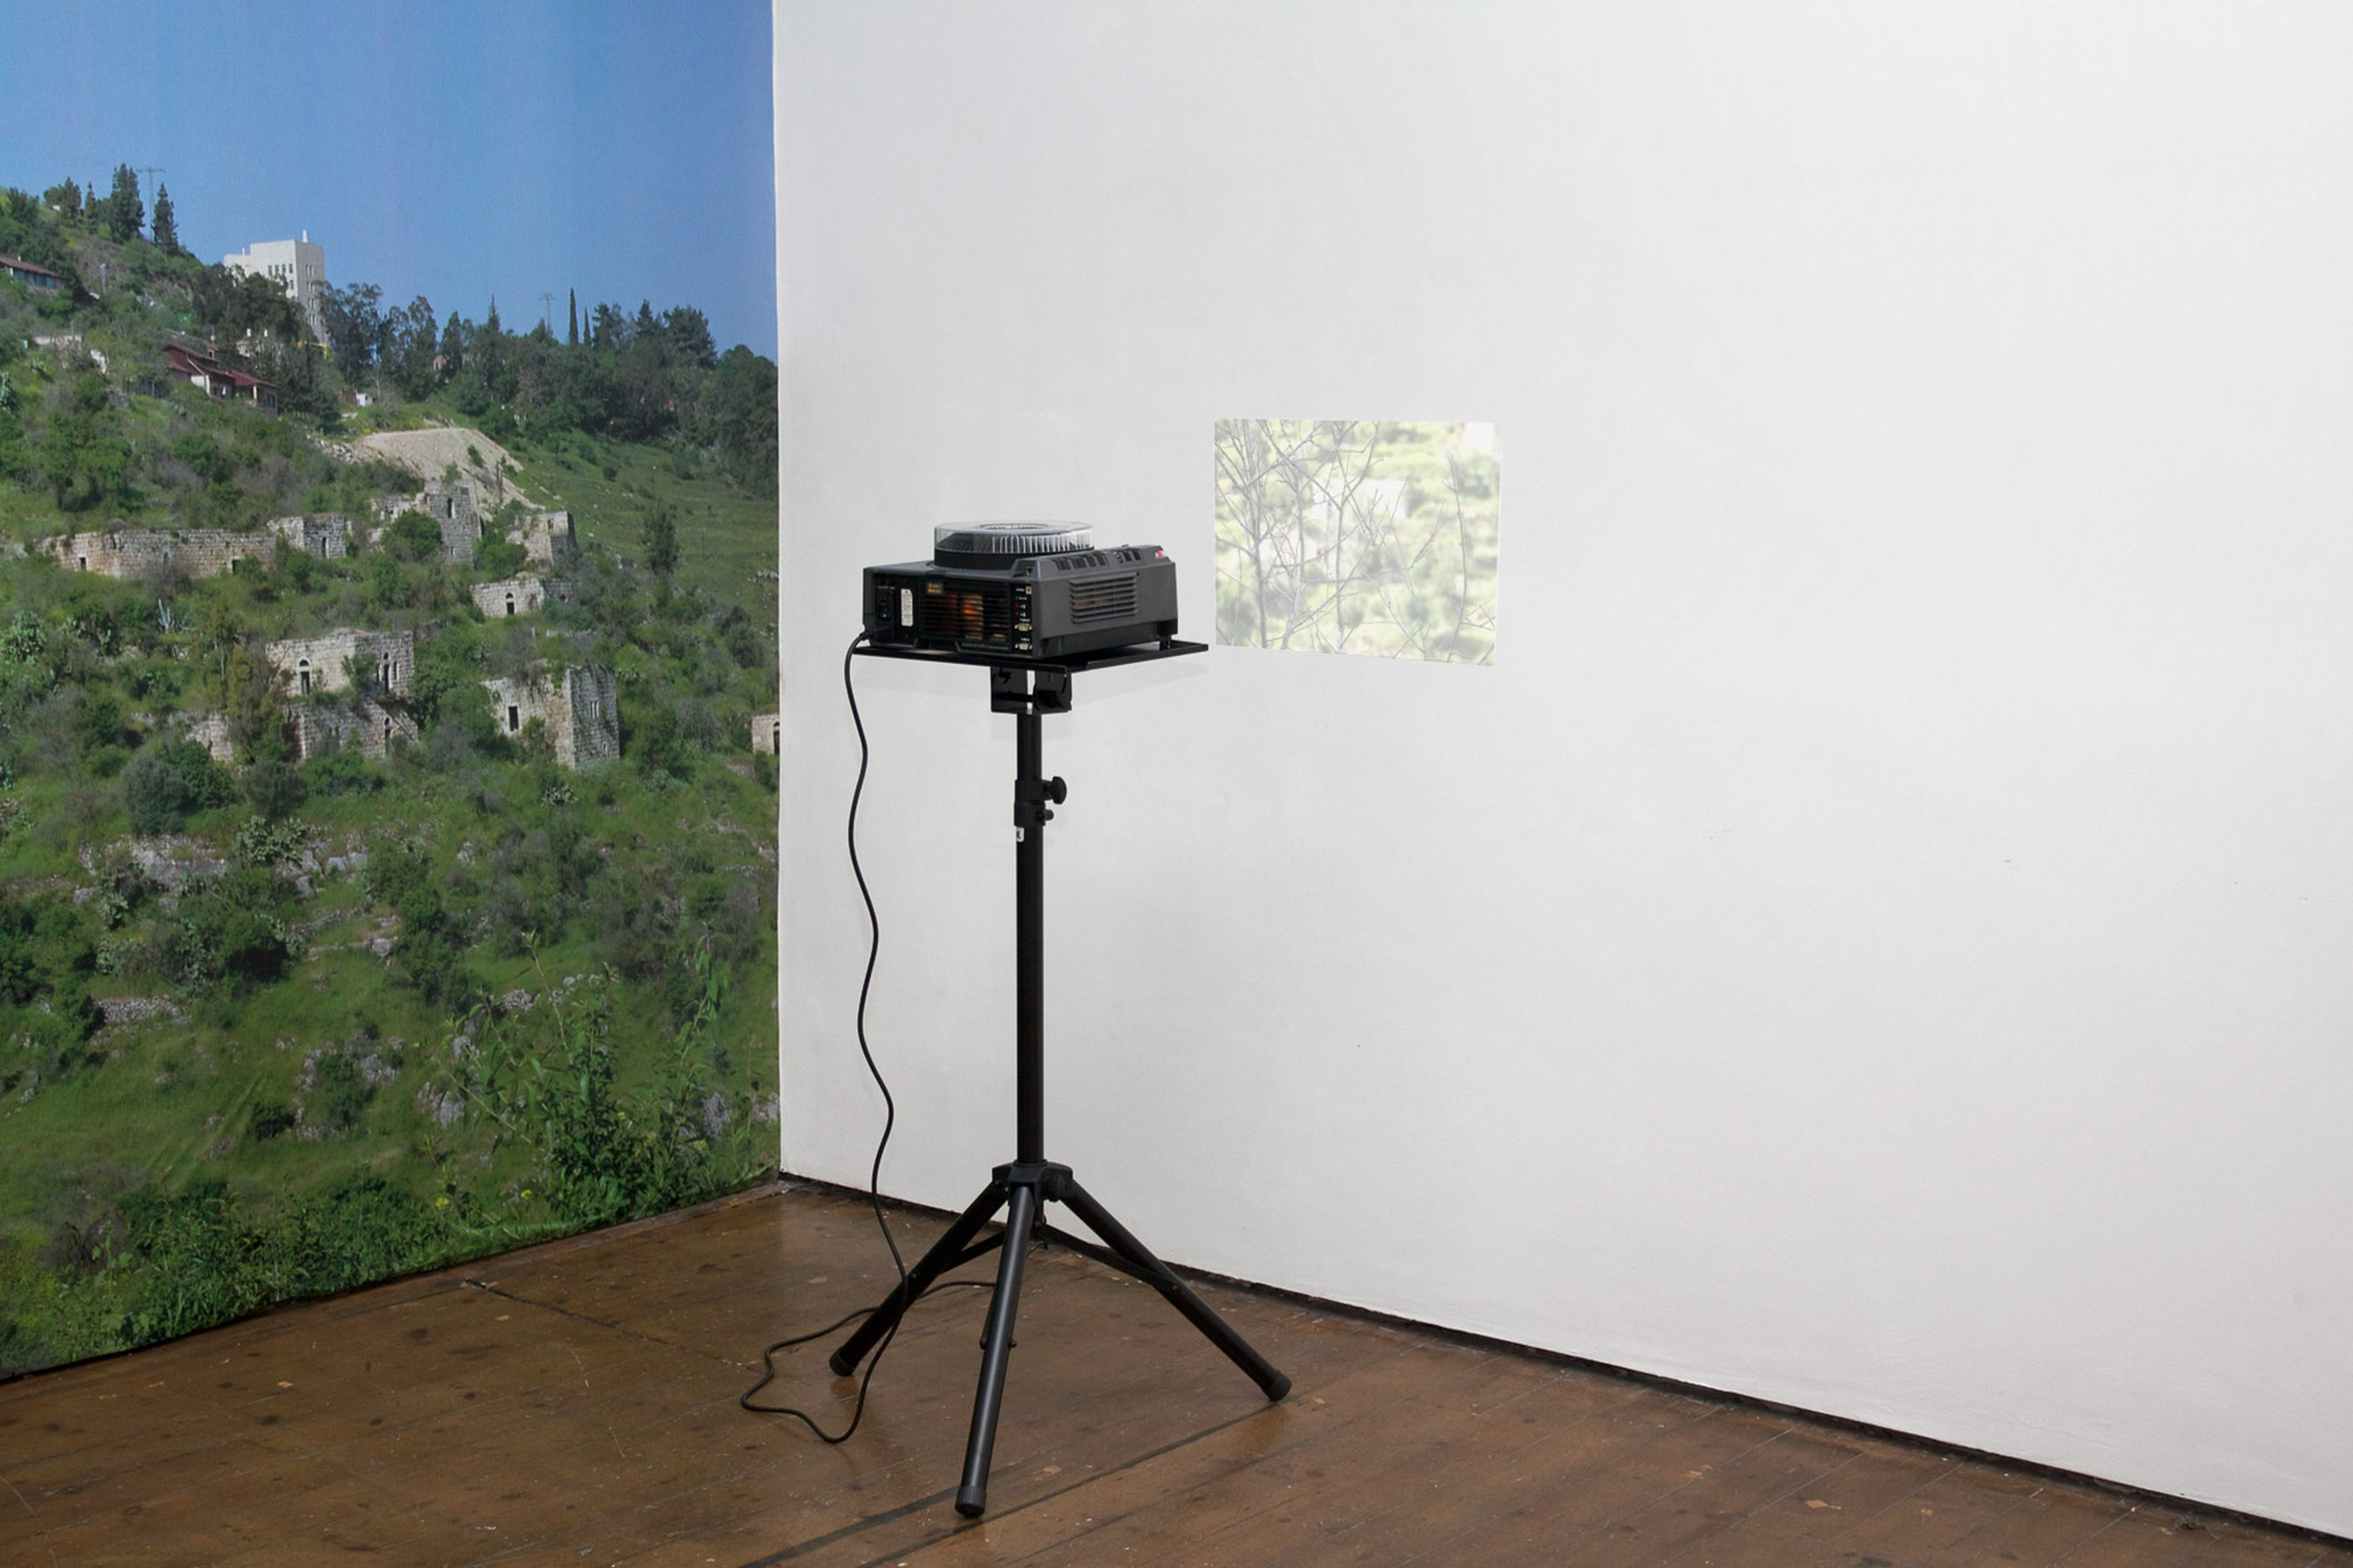 Unmade Film - The Reconnaissance, 2012 - 2013, installation view